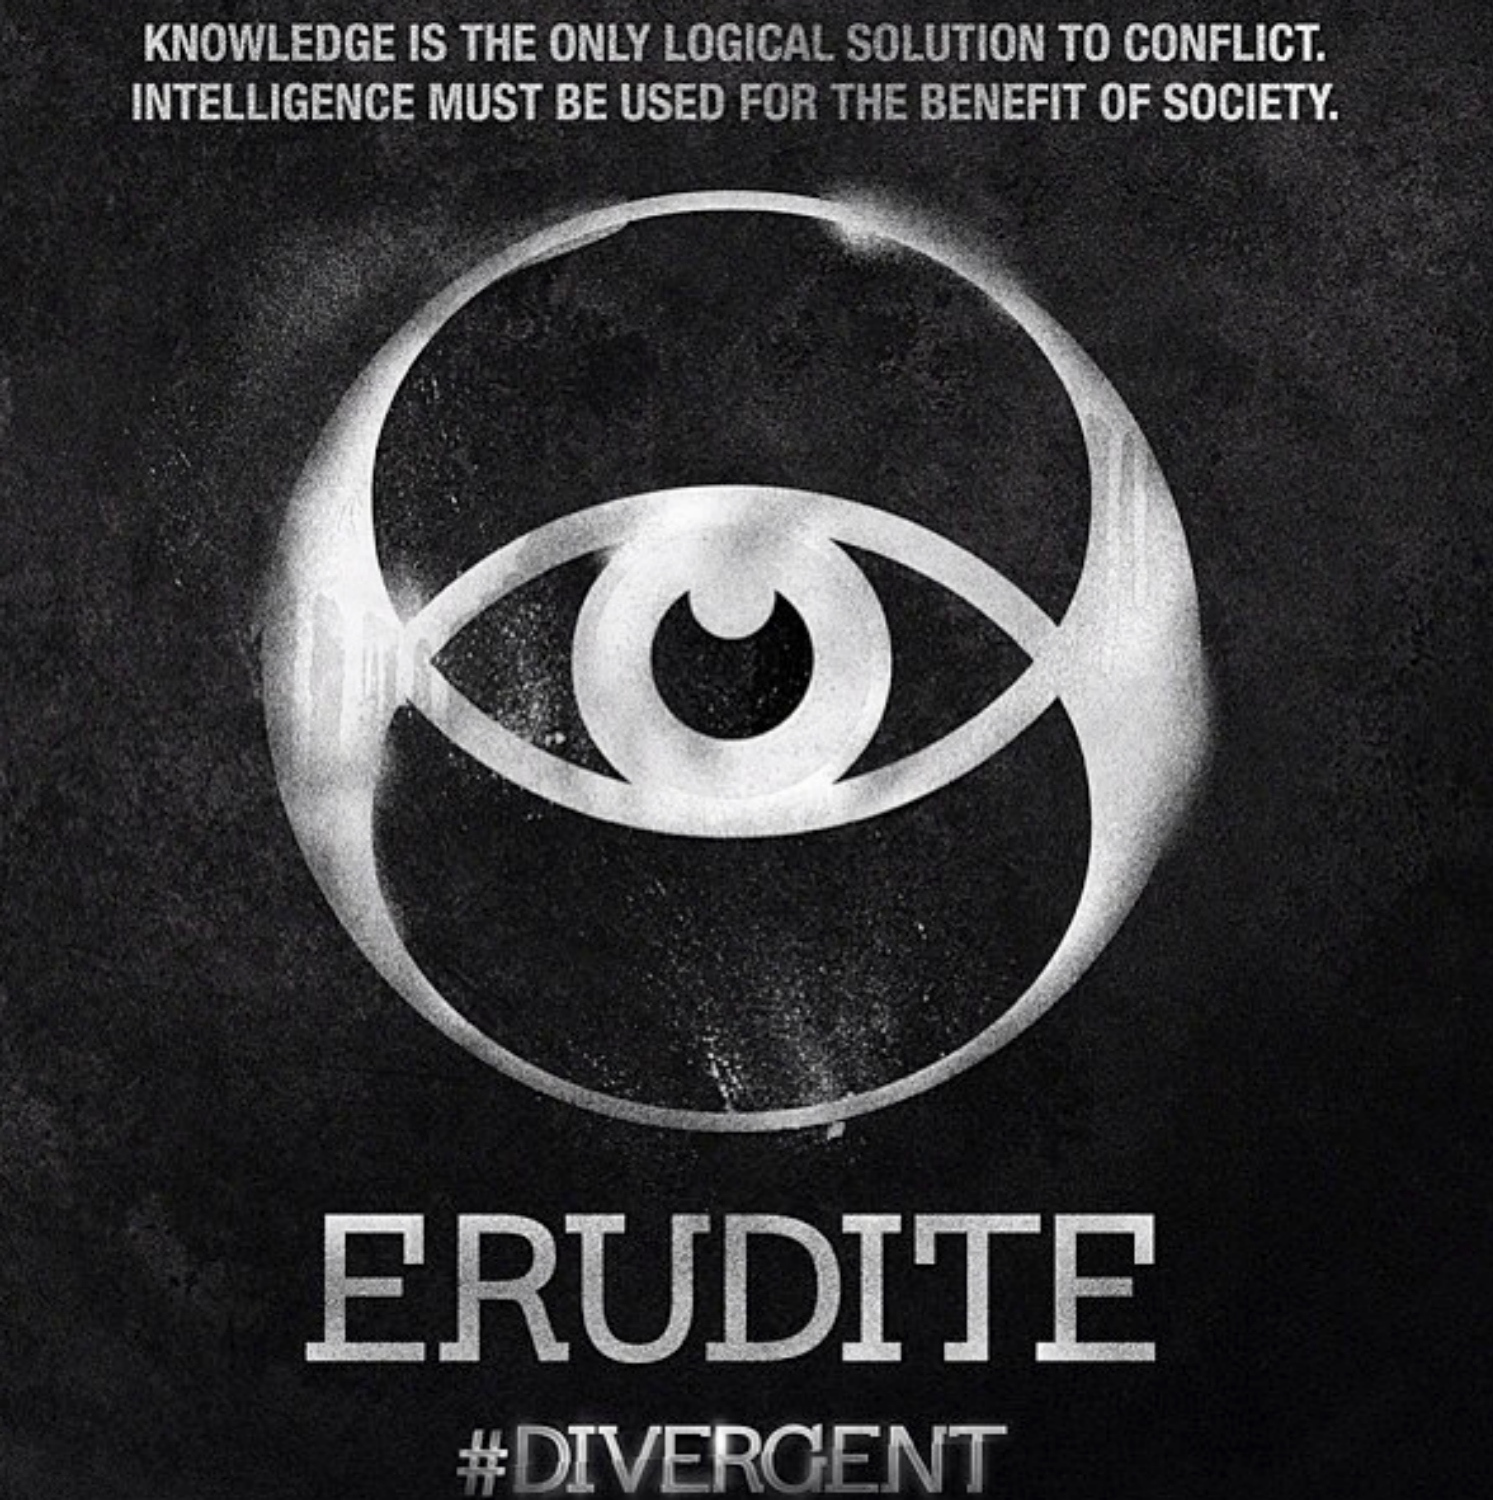 Image eruditeg divergent wiki fandom powered by wikia thumbnail for version as of 0047 august 29 2013 biocorpaavc Image collections